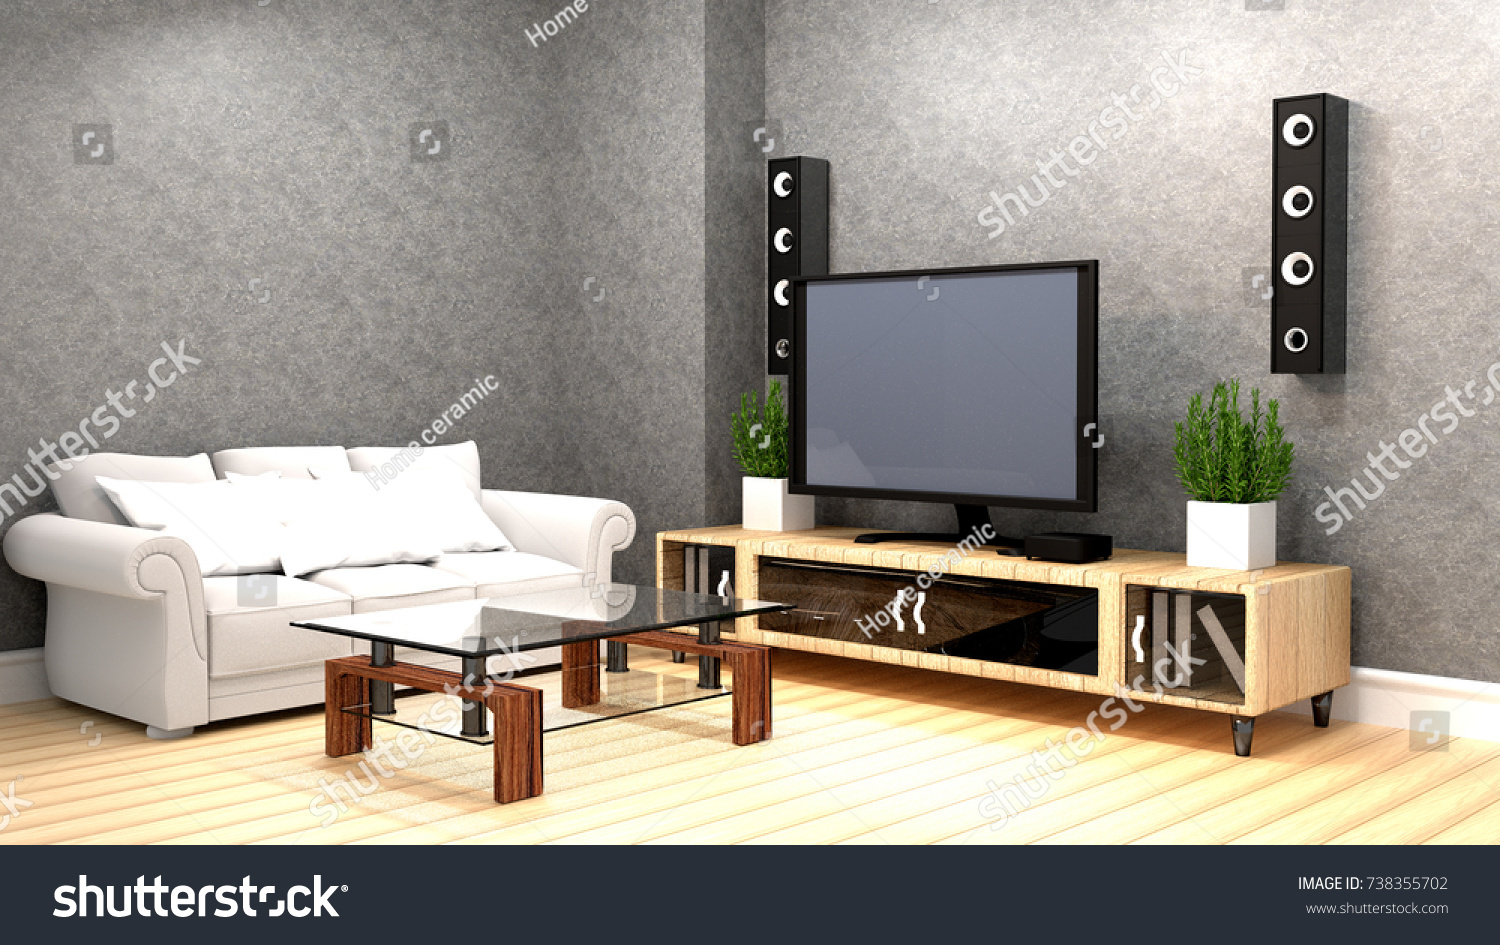 Karaoke Room Modern Red Style Tv Stock Illustration 738355702  # Kaorka Meuble Tv